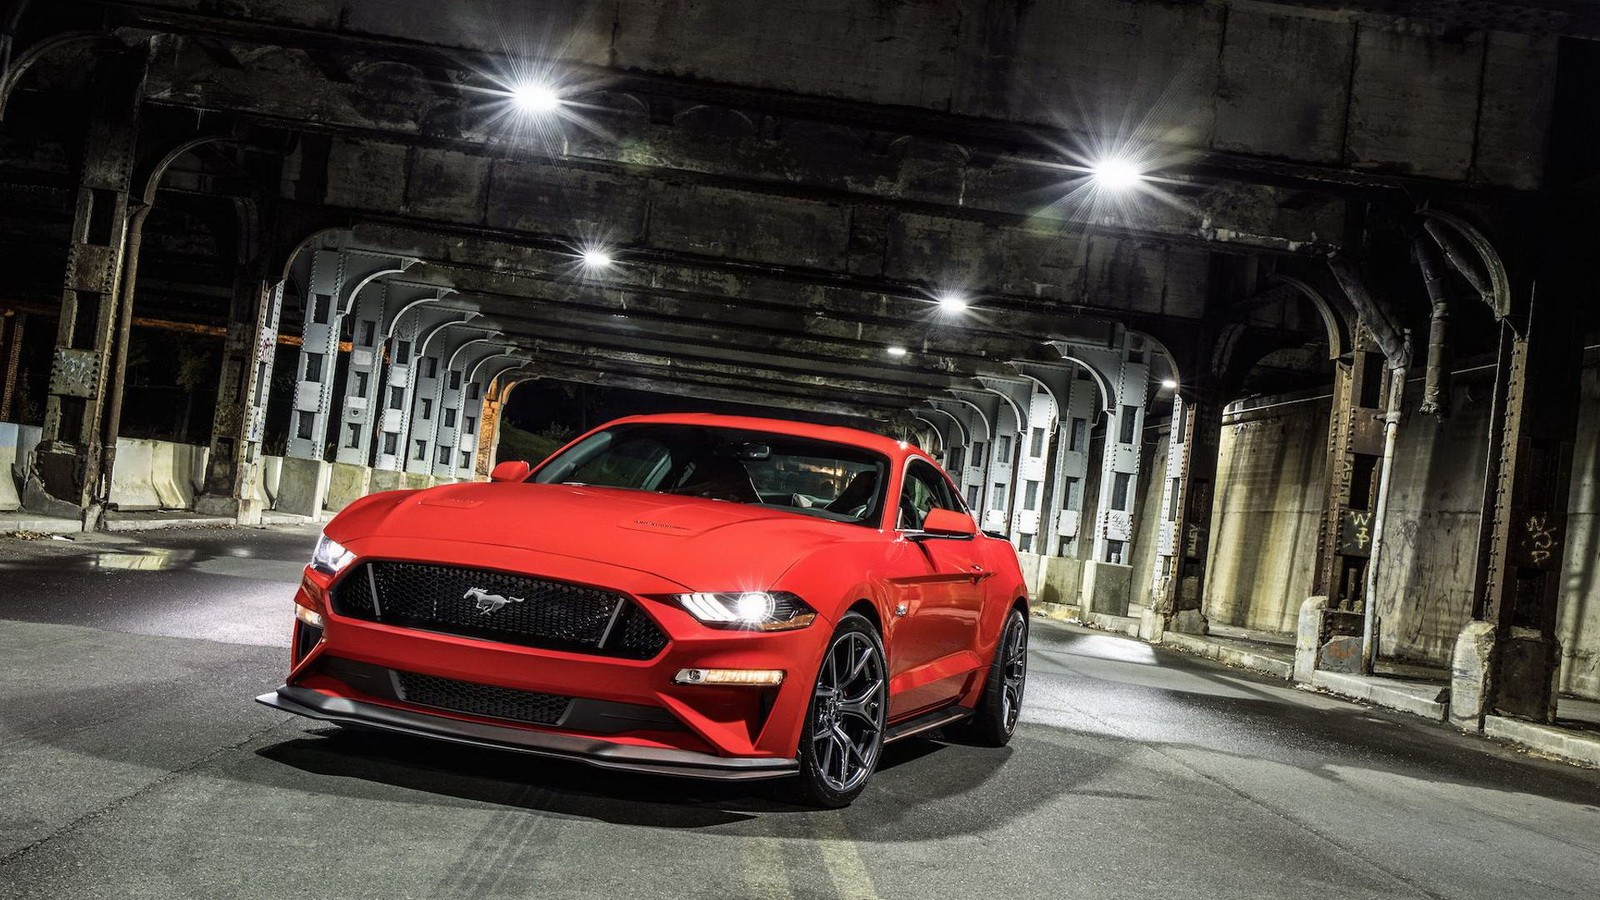 5 0L Coyote V8 Pumped To 700 HP With Ford Performance-Roush